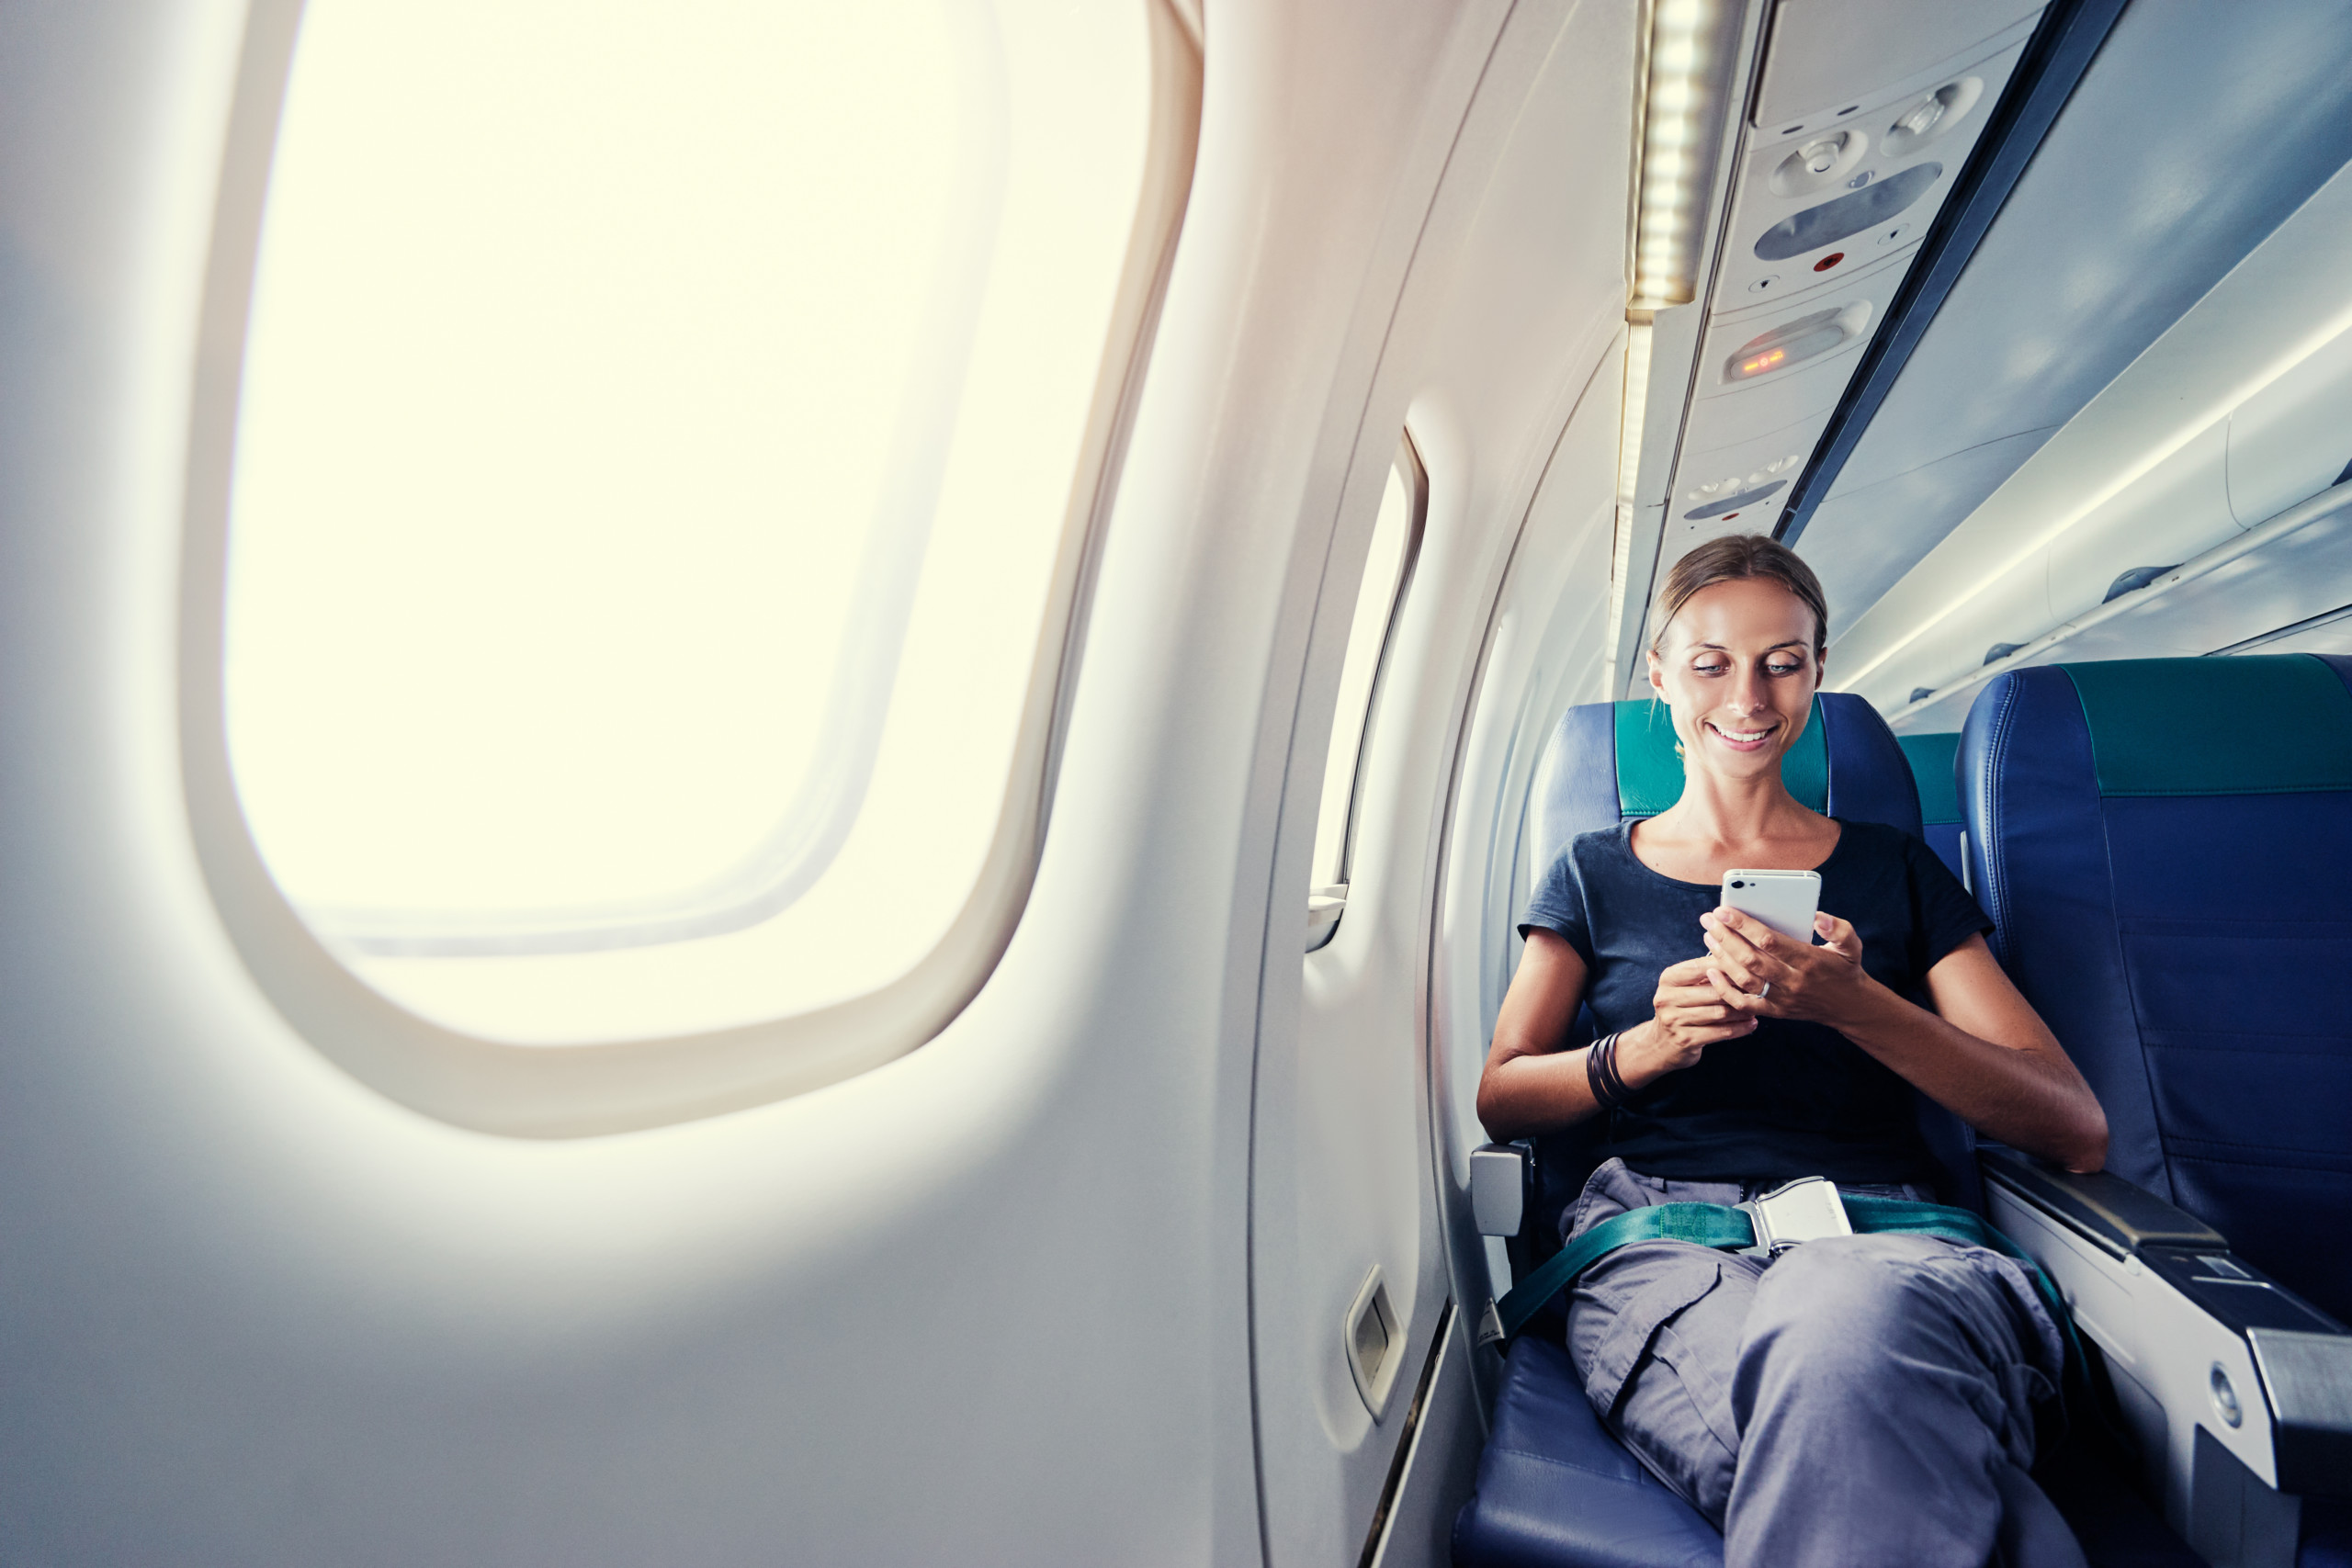 Why Do Commercial Airlines Ask for Phones to be Turned Off, but Other Electronics Are Available for Use?